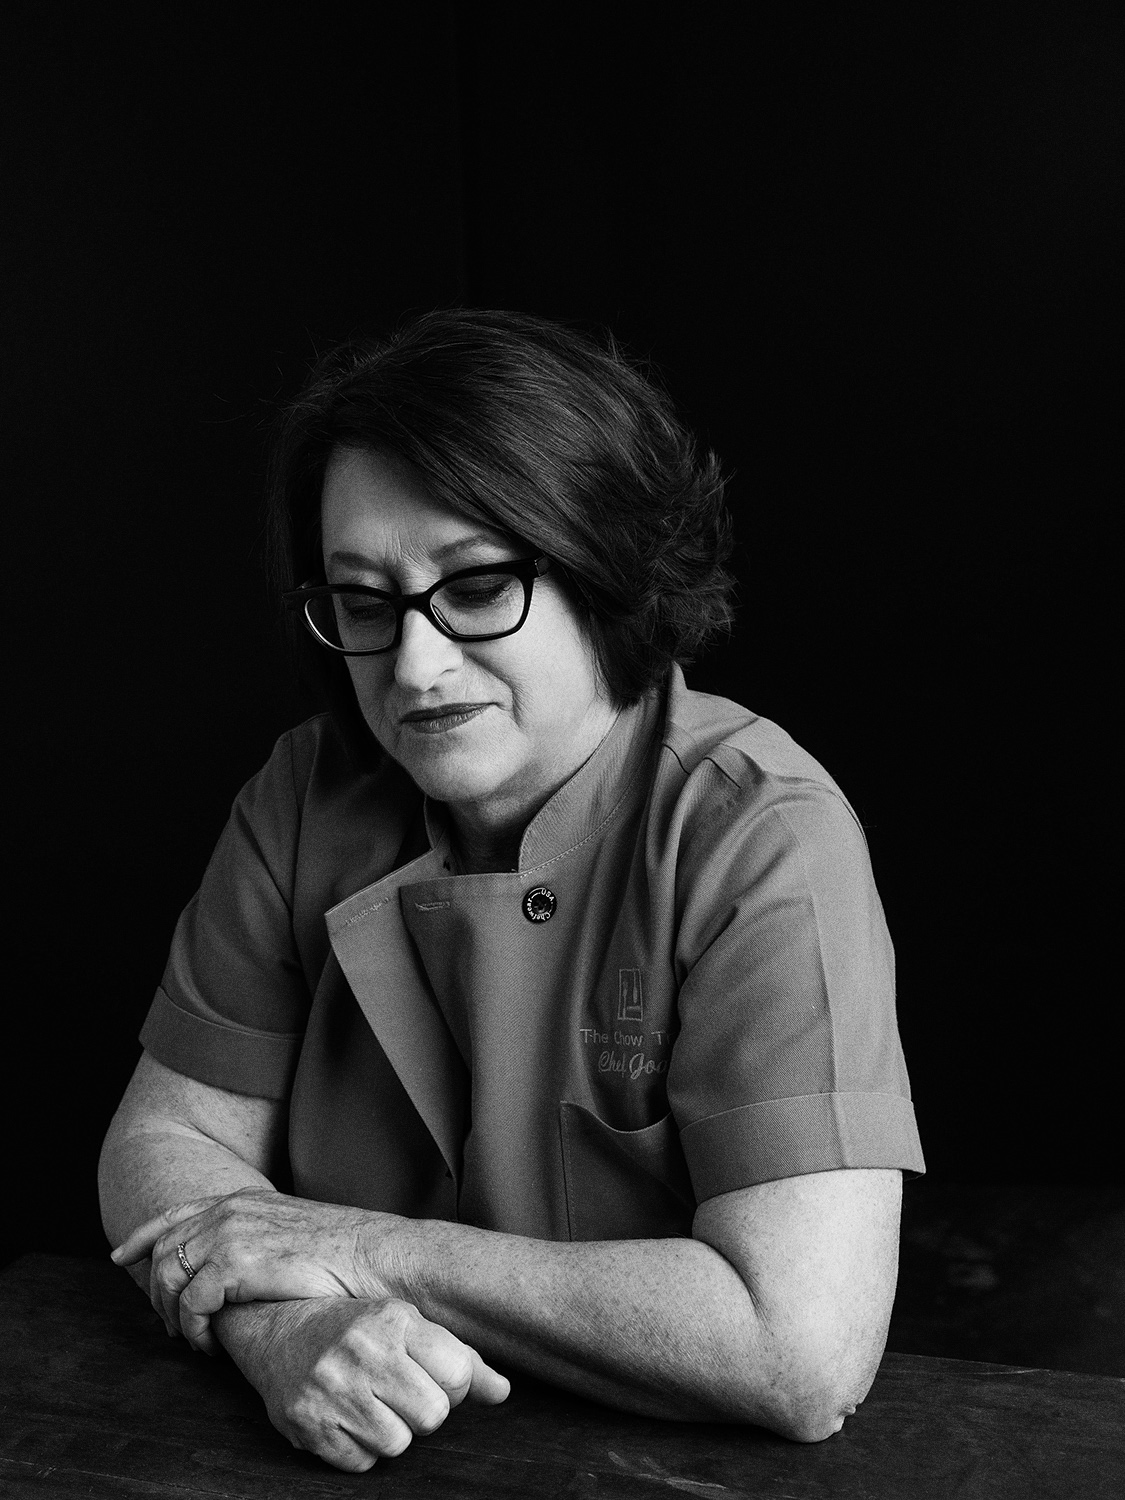 Joan Cheever photographed at Eleven Hundred Collective Studio in San Antonio, Texas, by editorial and portrait photographer Josh Huskin.